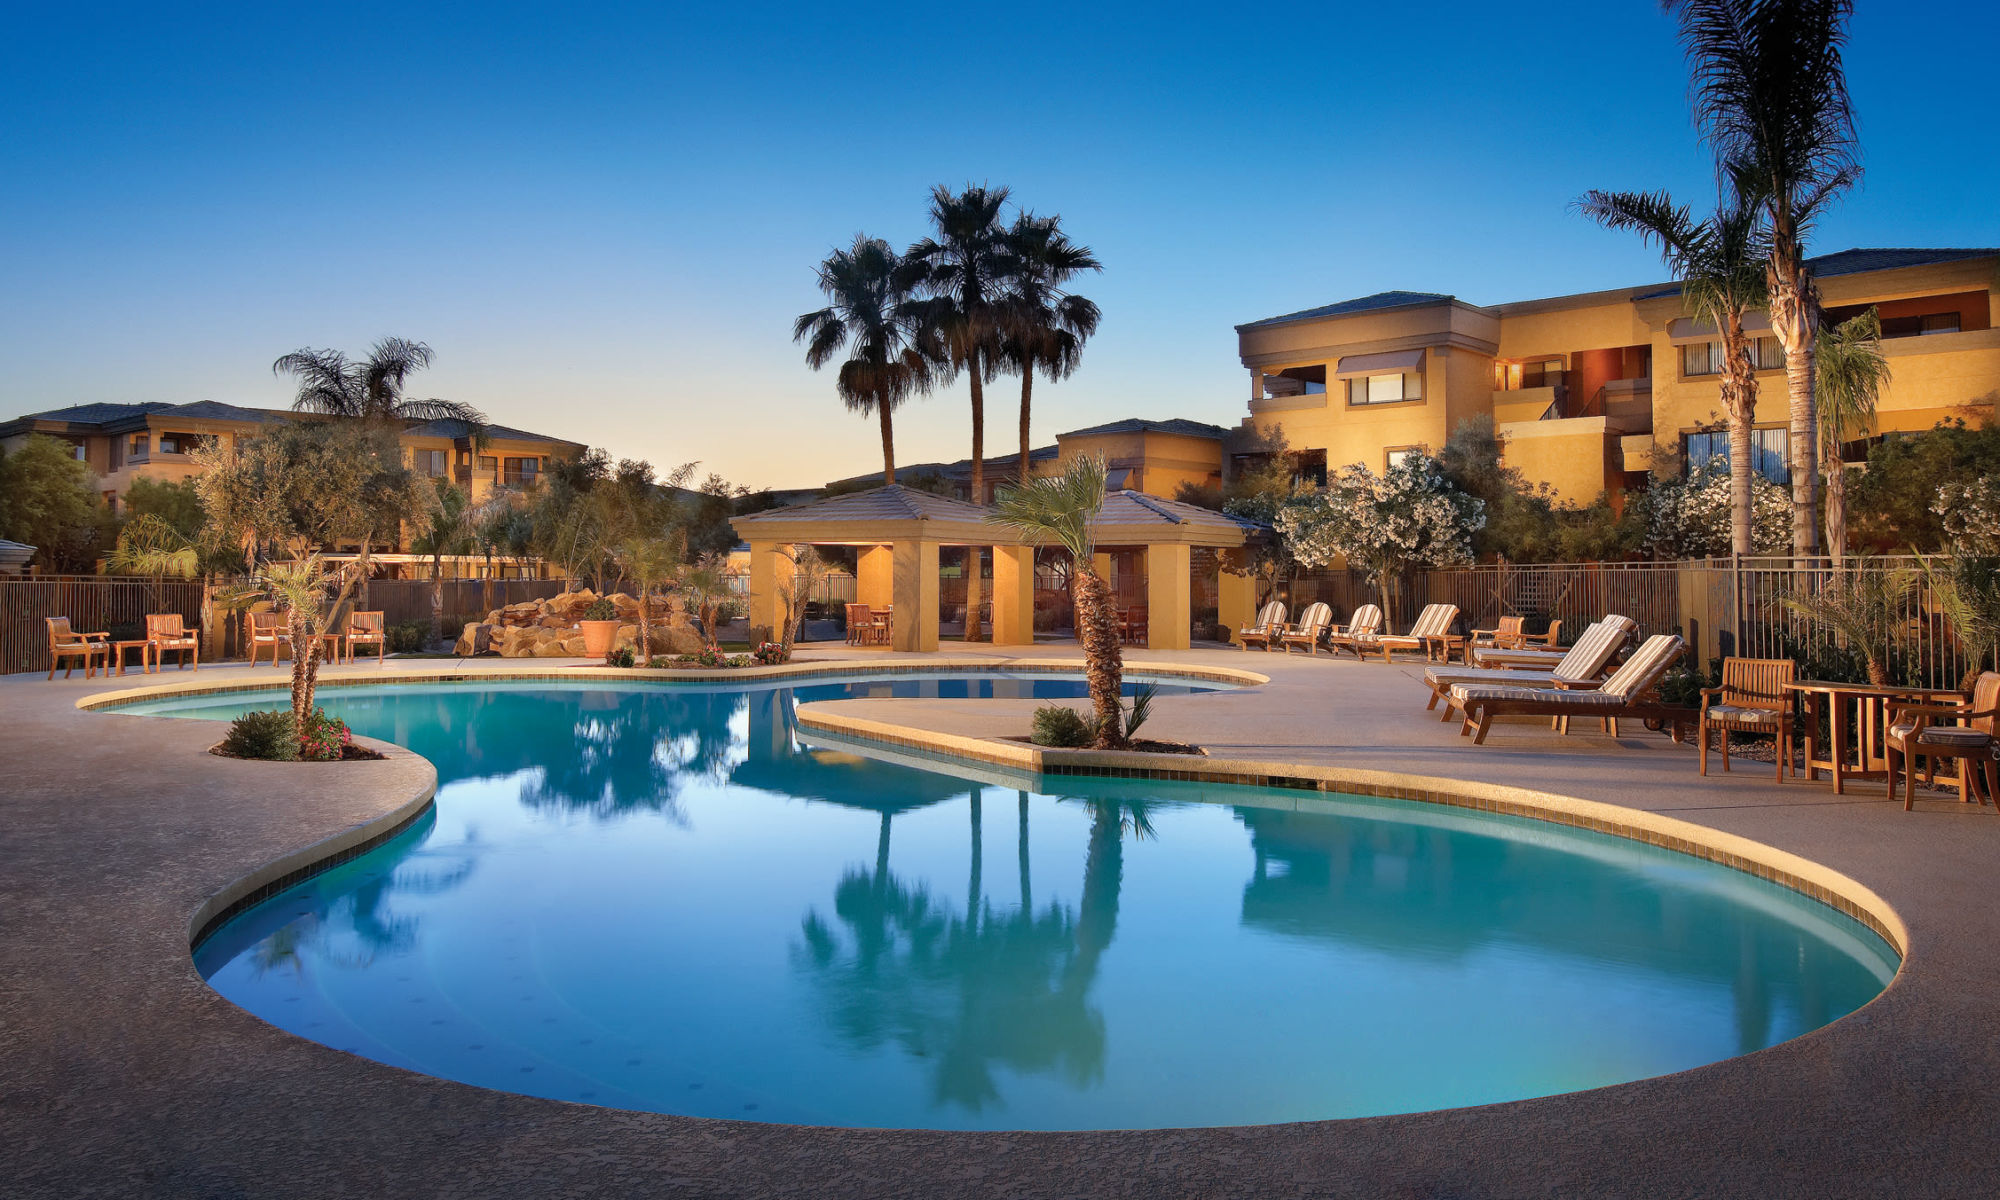 Apartments at Waterside at Ocotillo in Chandler, Arizona